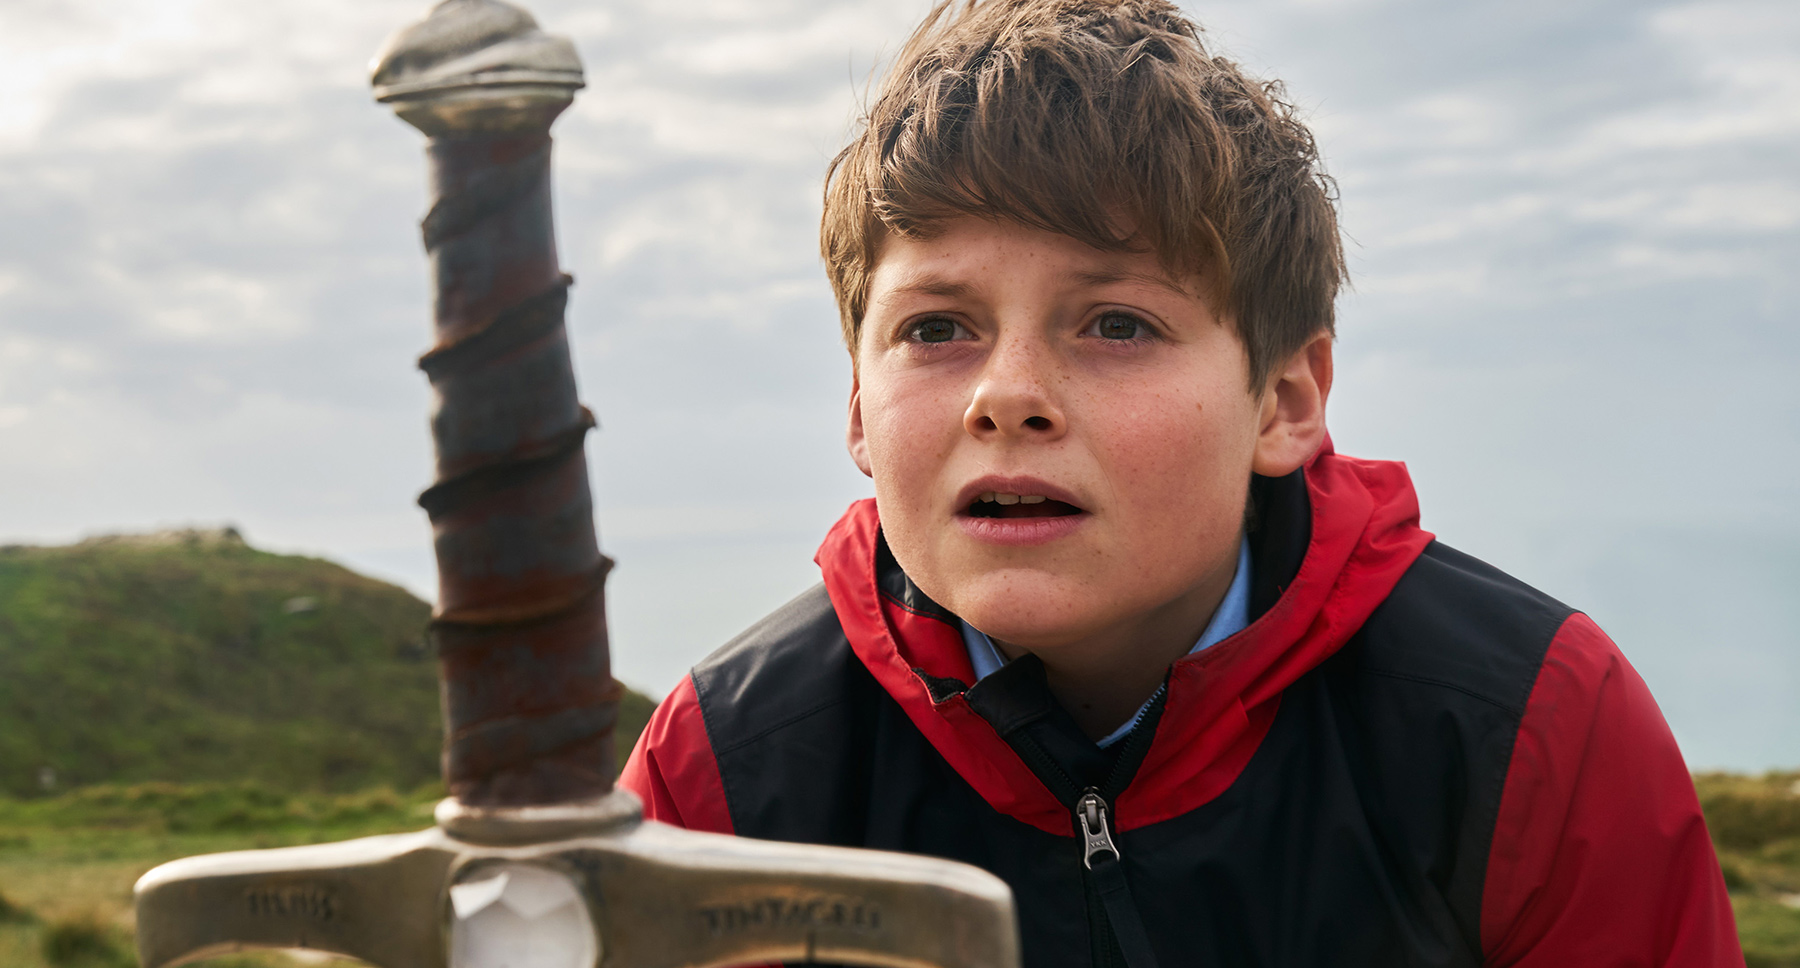 'The Kid Who Would Be King' Review: 'Attack the Block' Director Joe Cornish Returns with a Fun Slice of Revisionist History